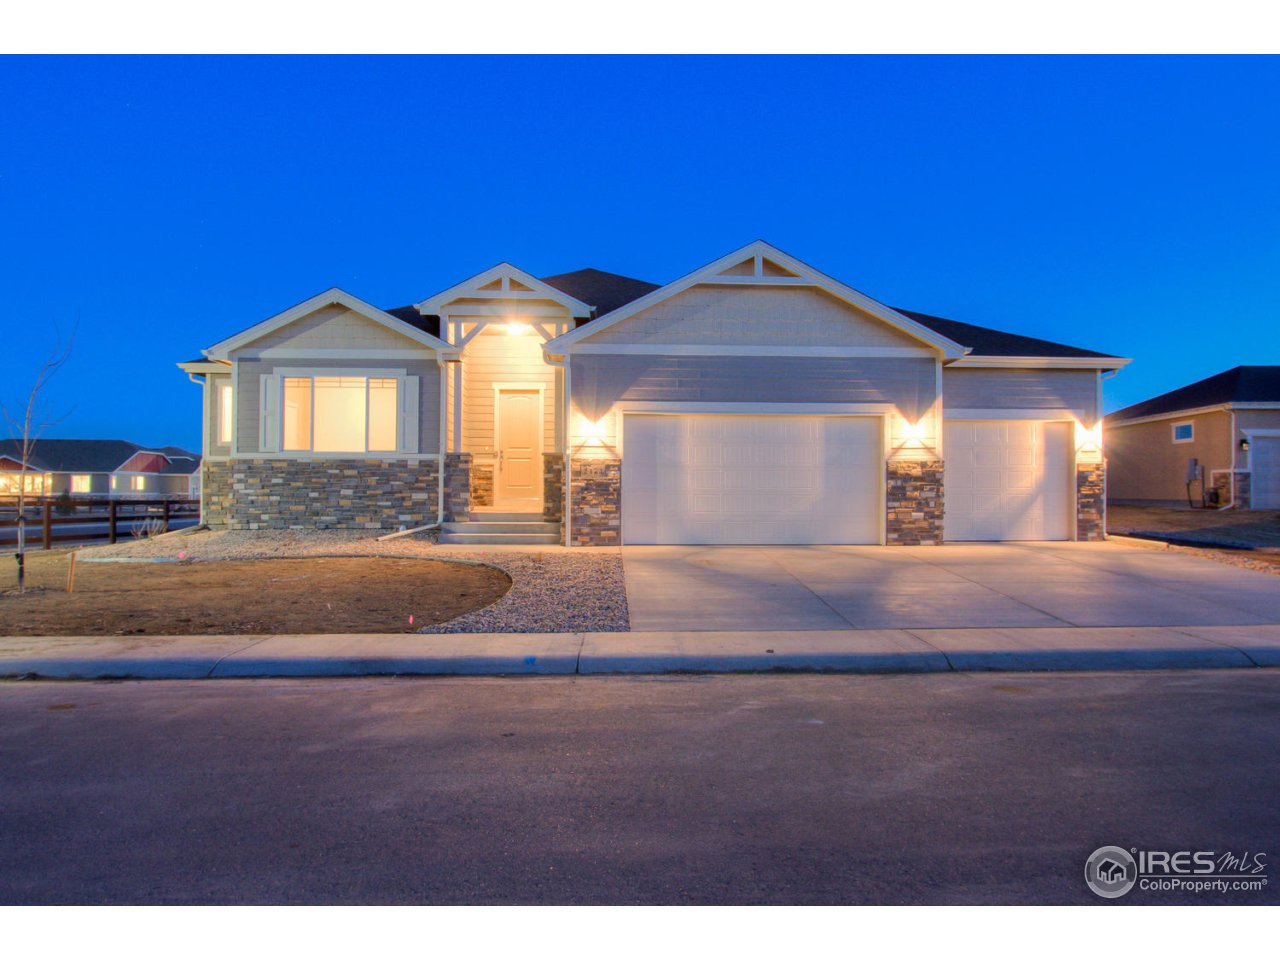 2173 Honeybee Ct, Windsor, CO 80528